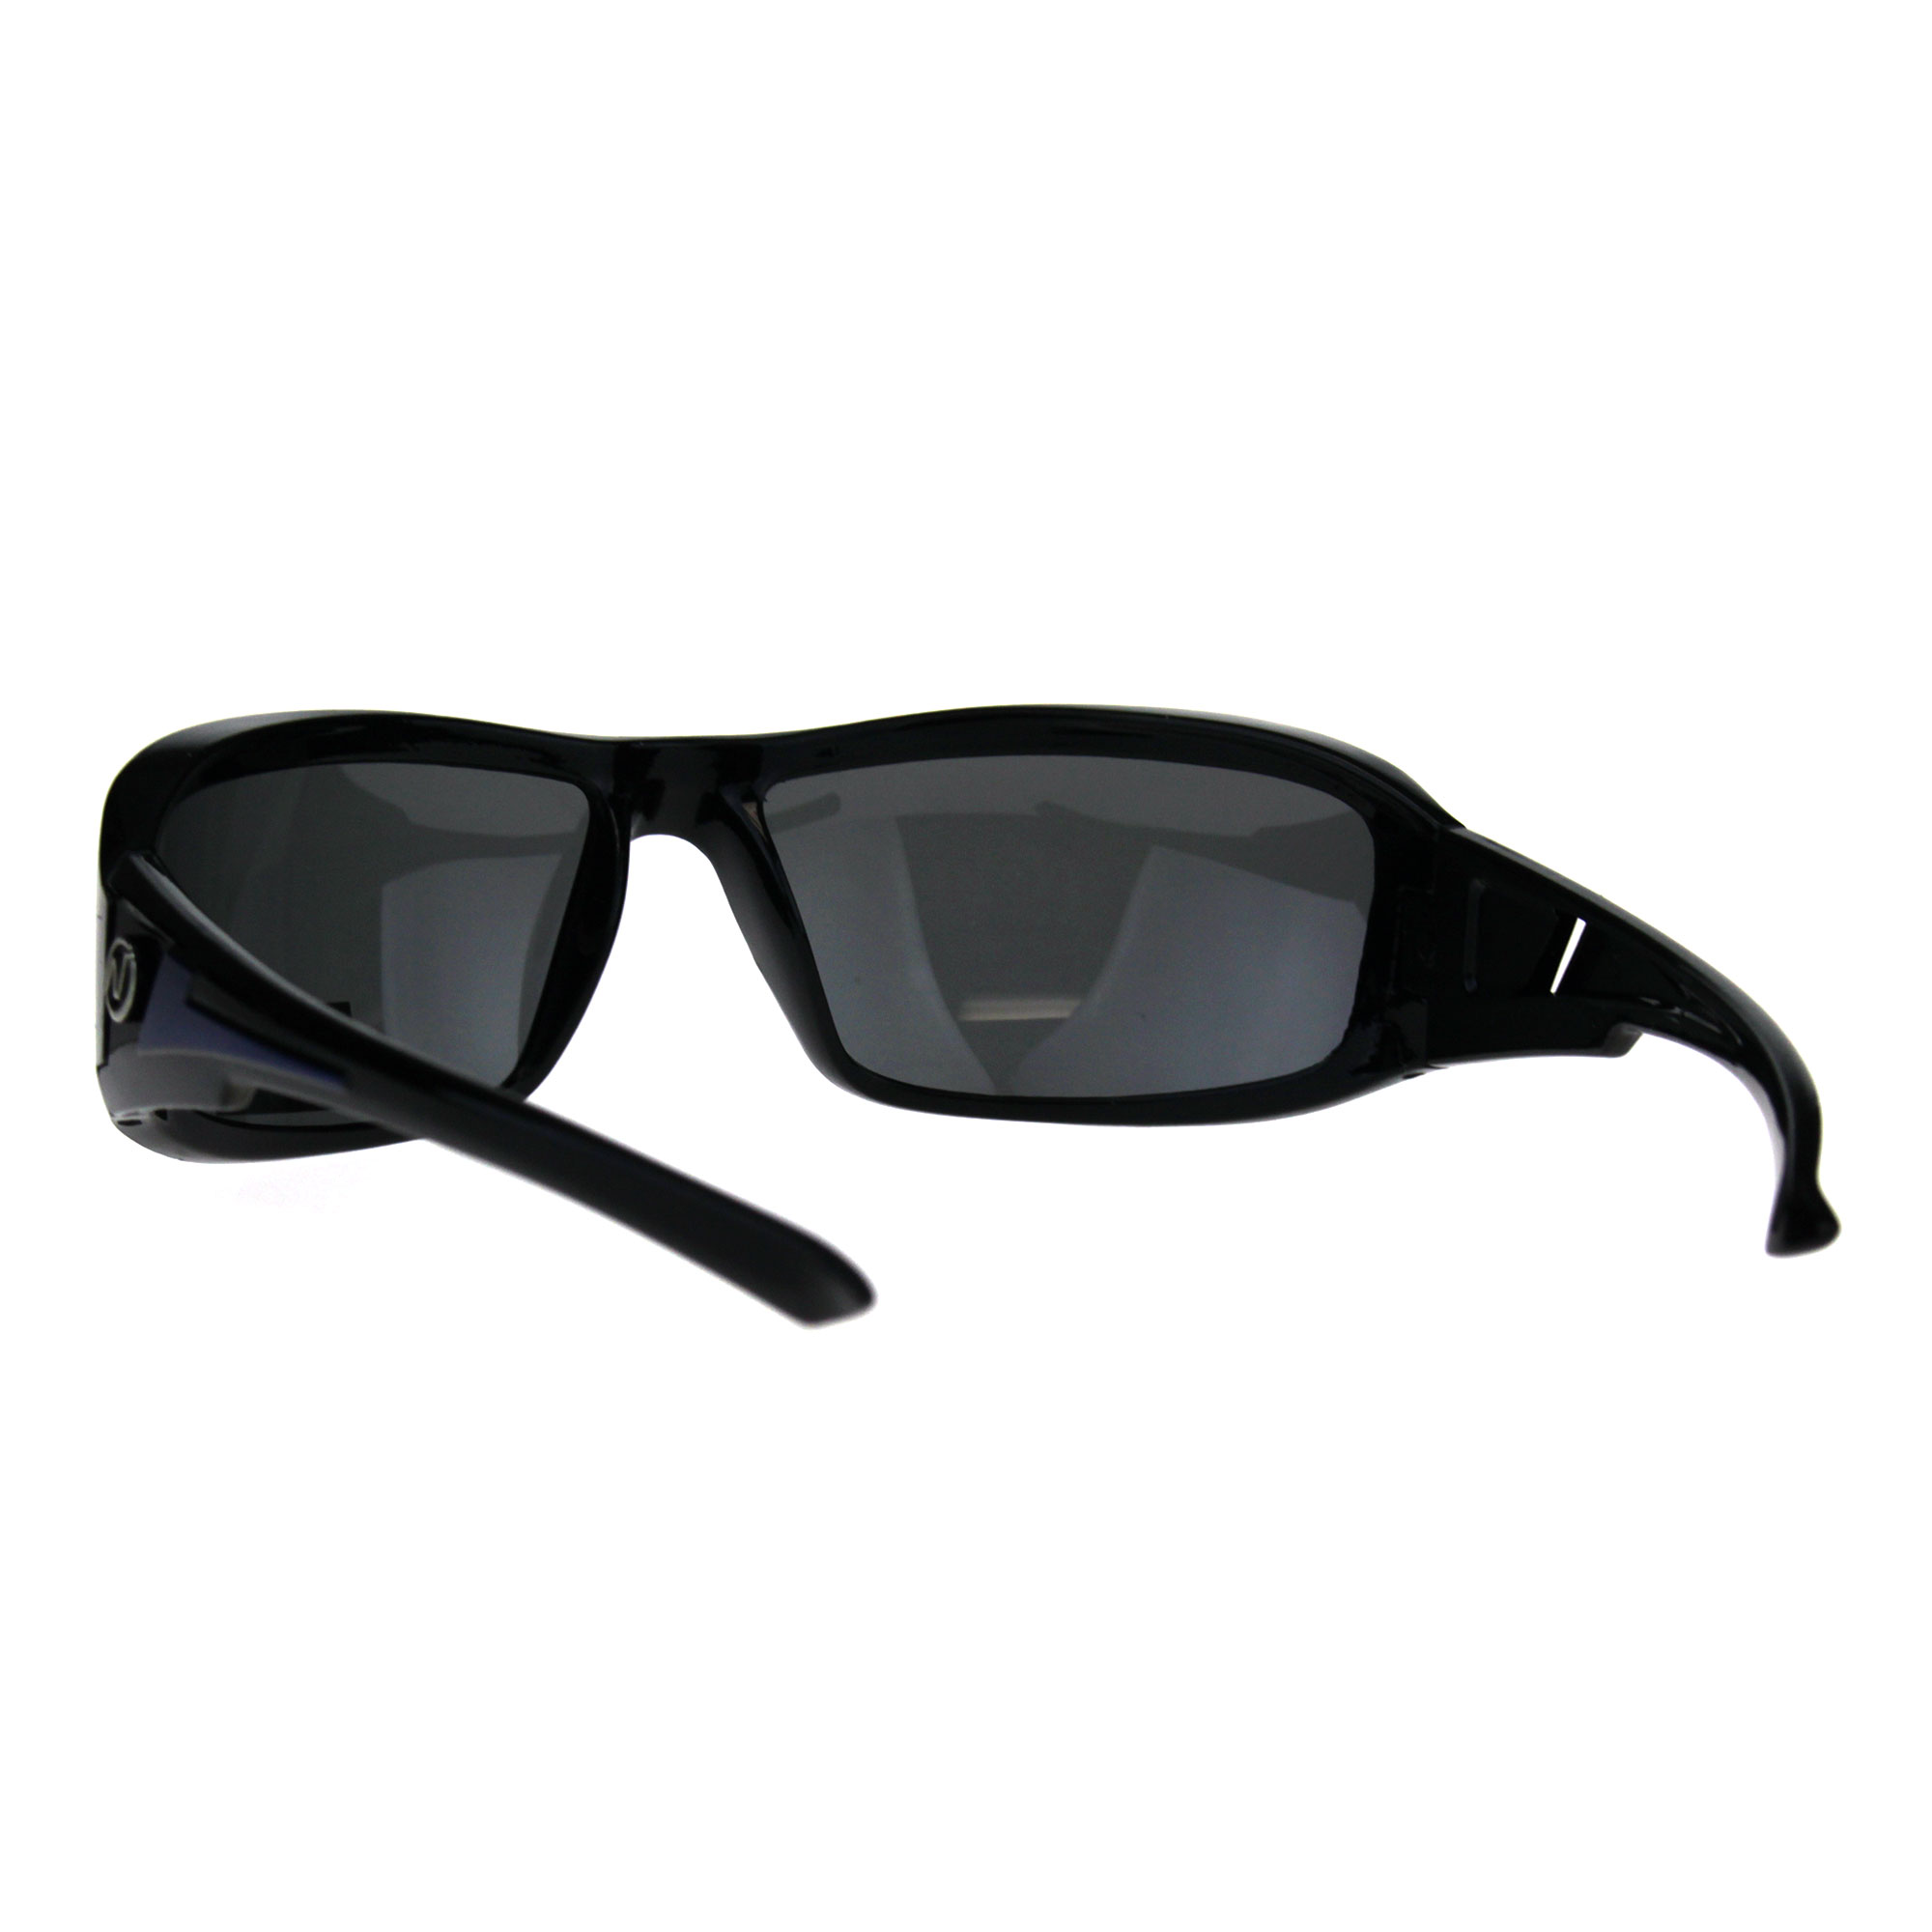 051f366b873 Polarized Futuristic Aerodynamic Warp Sport Mens Sunglasses